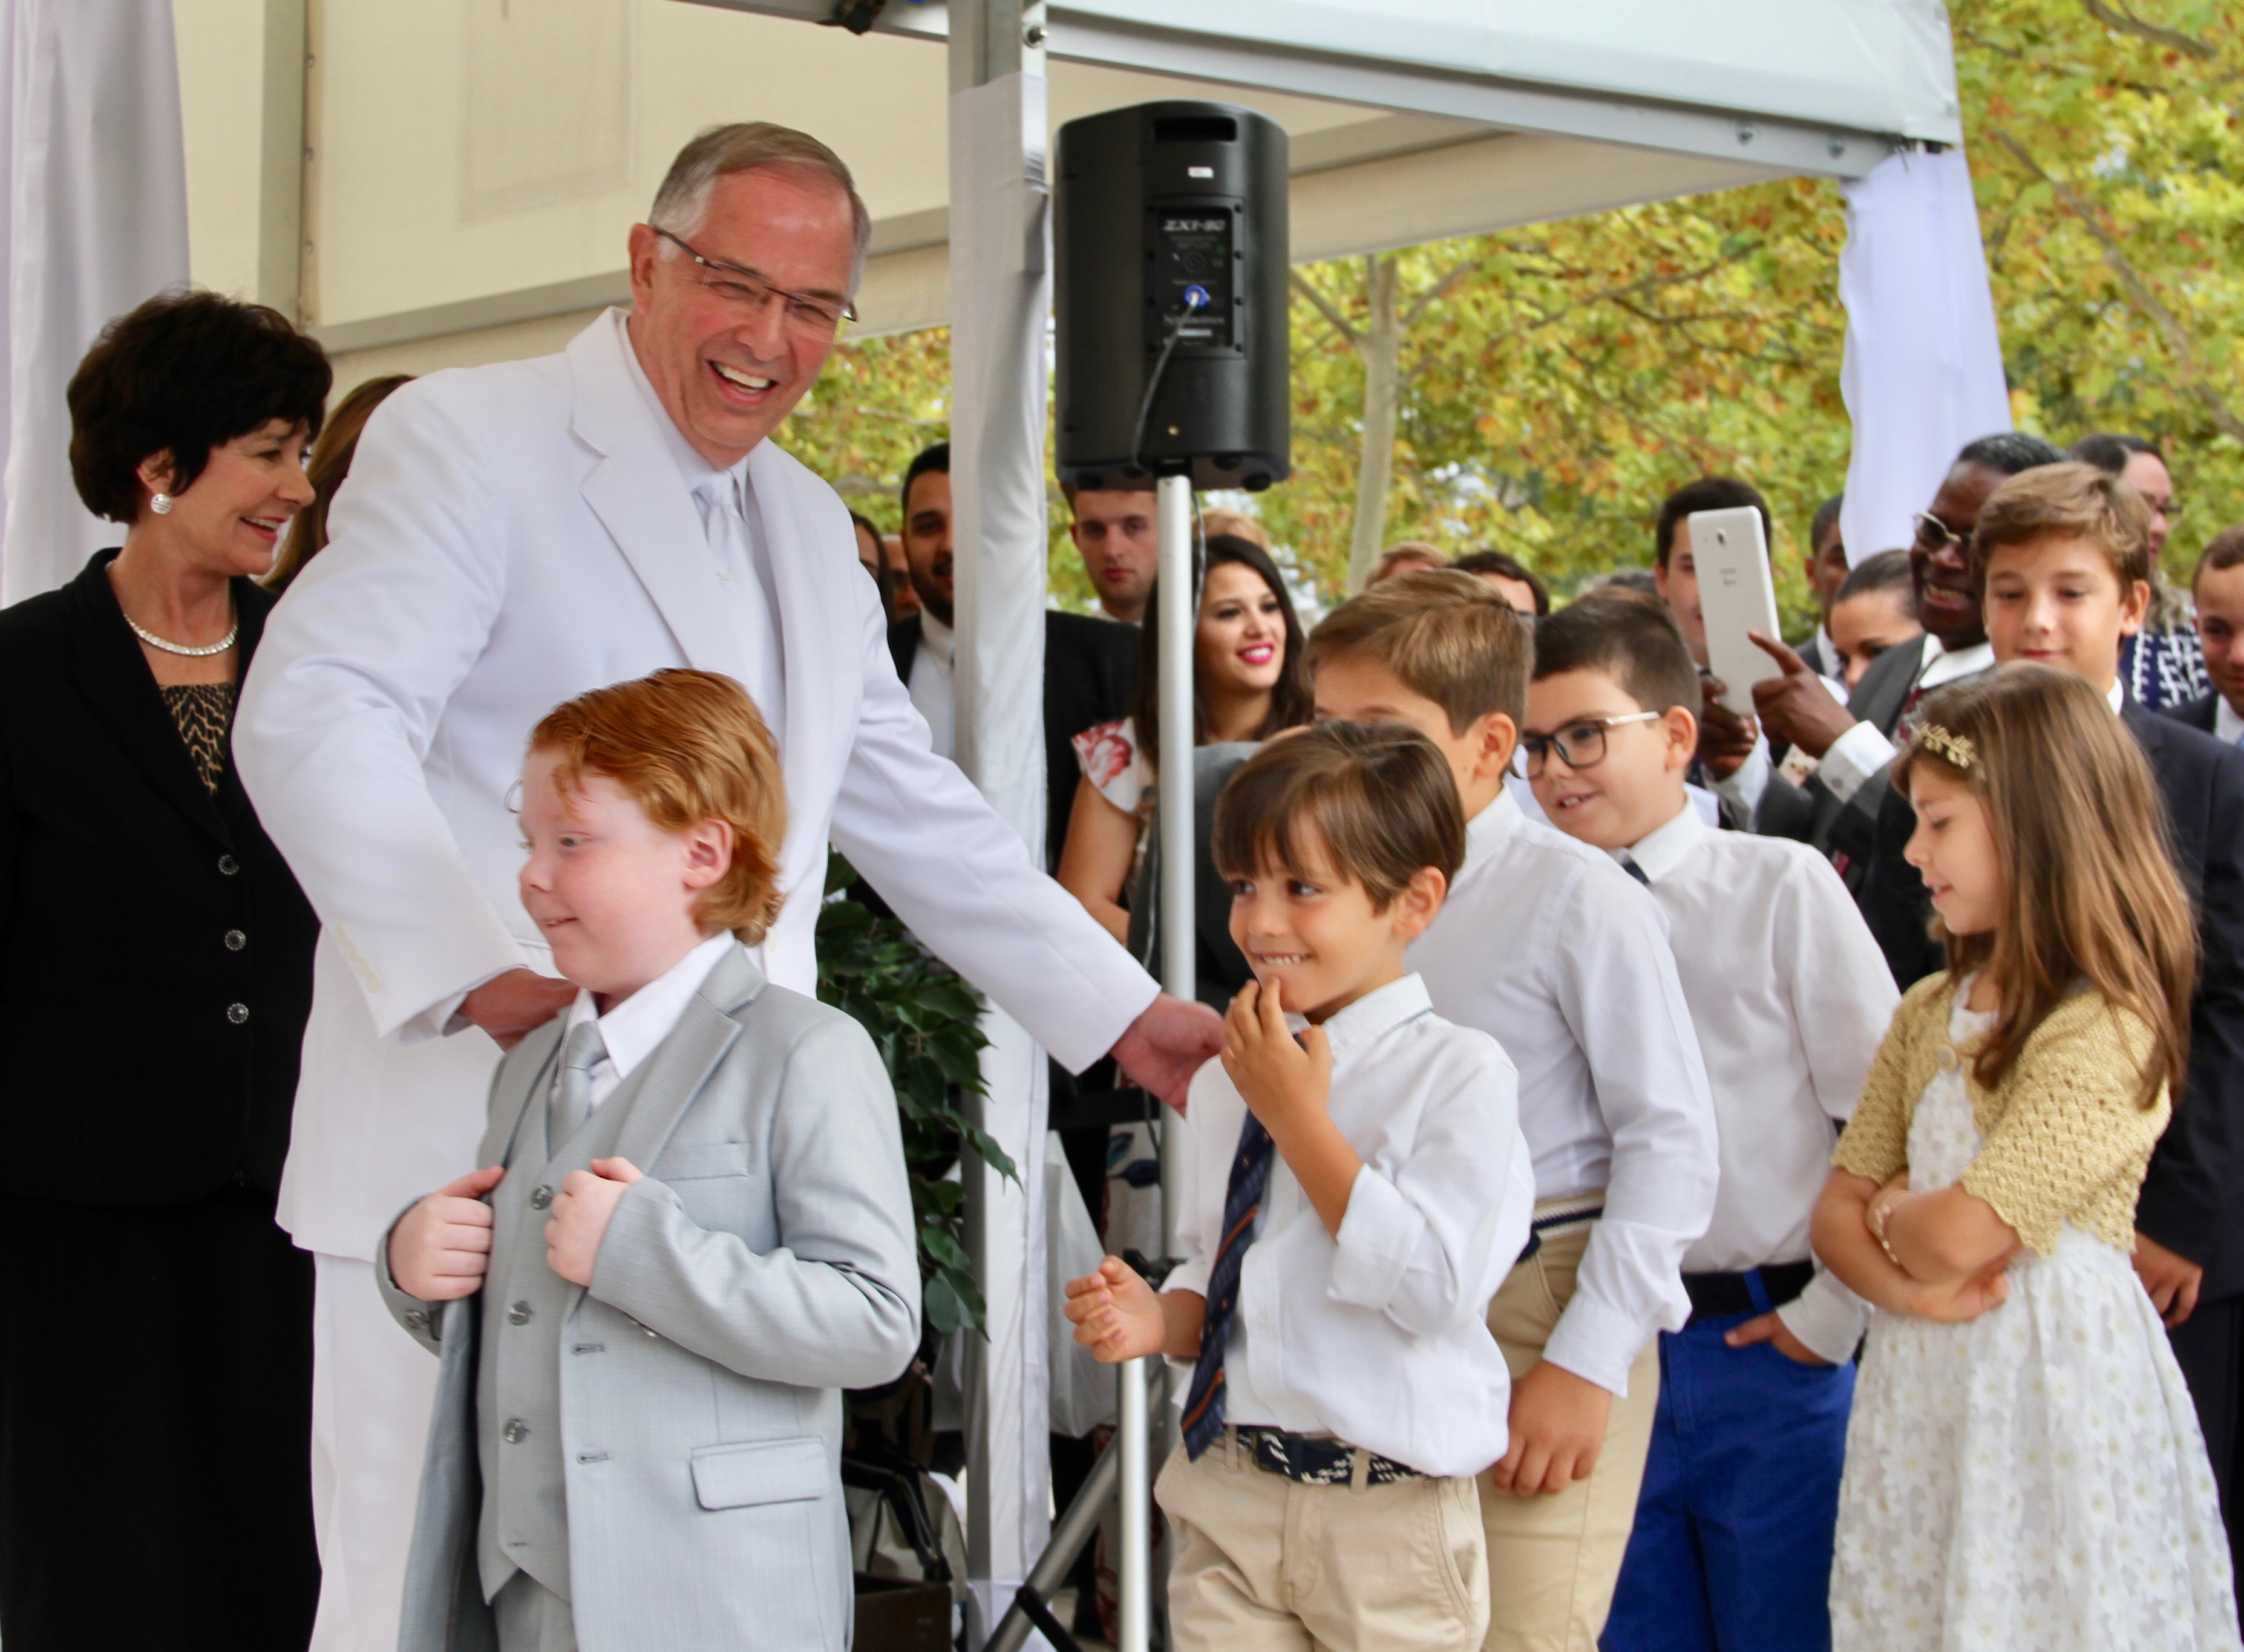 Elder Neil L. Andersen of the Quorum of the Twelve Apostles helps guide several children to participate in the cornerstone ceremony of the Lisbon Portugal Temple dedication on Sunday, Sept. 15, 2019.